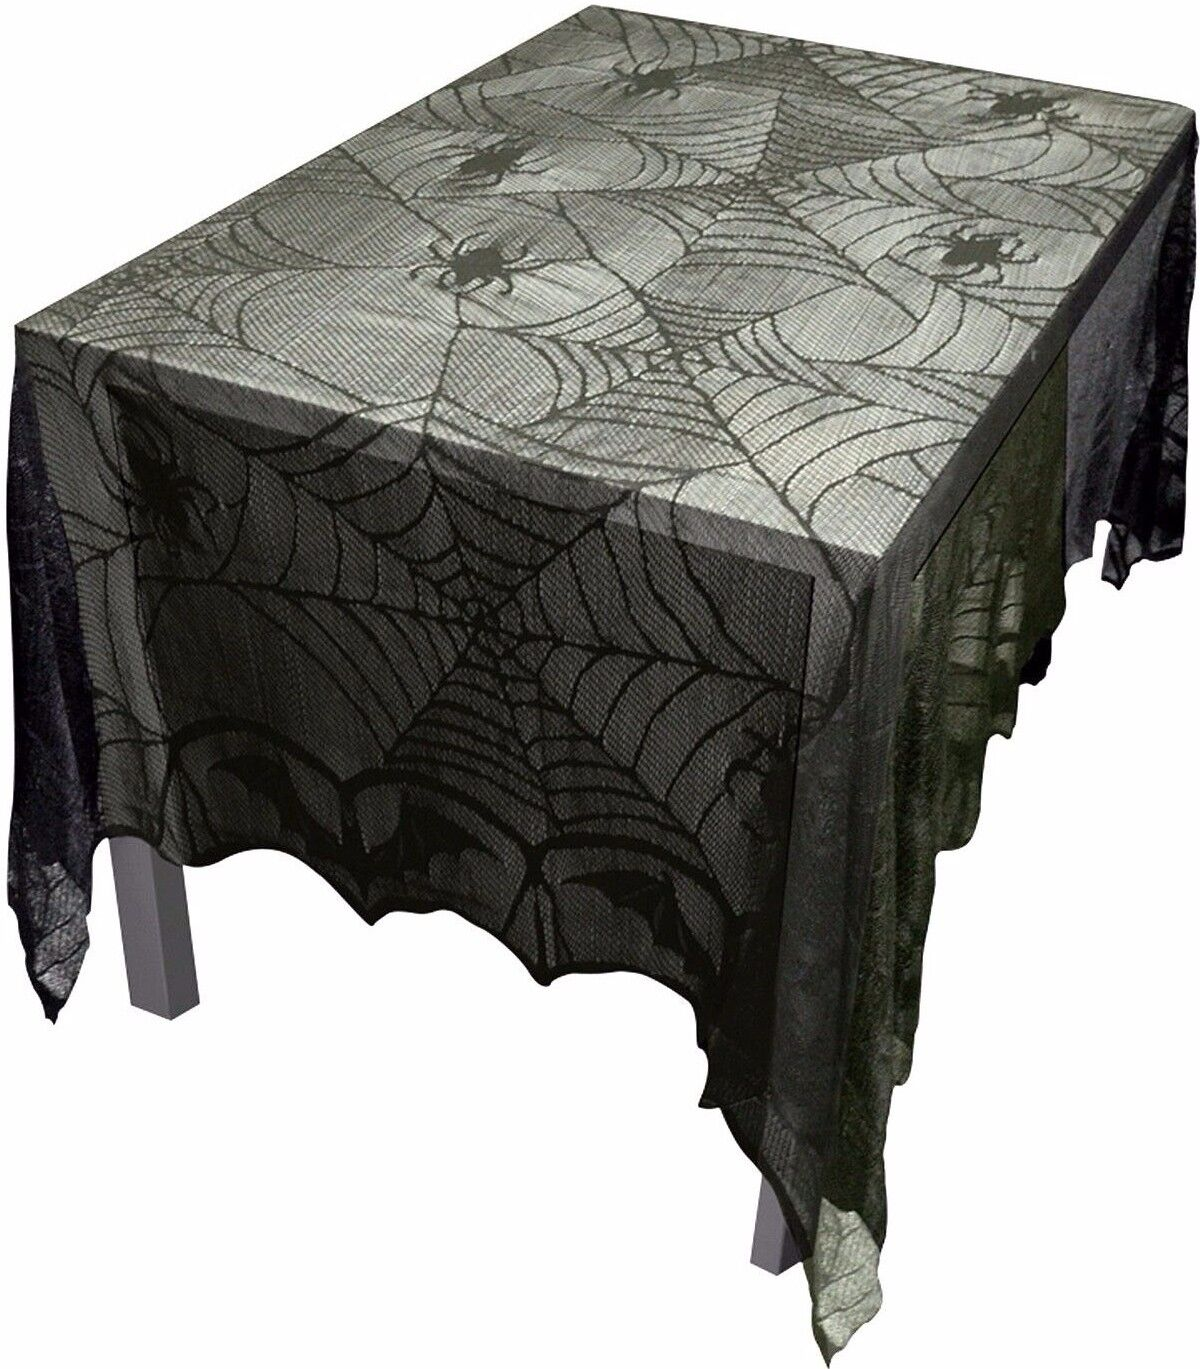 USA Lace~Frightful Halloween Pennant Banner Party Decor Mantel Scarf Swag Runner